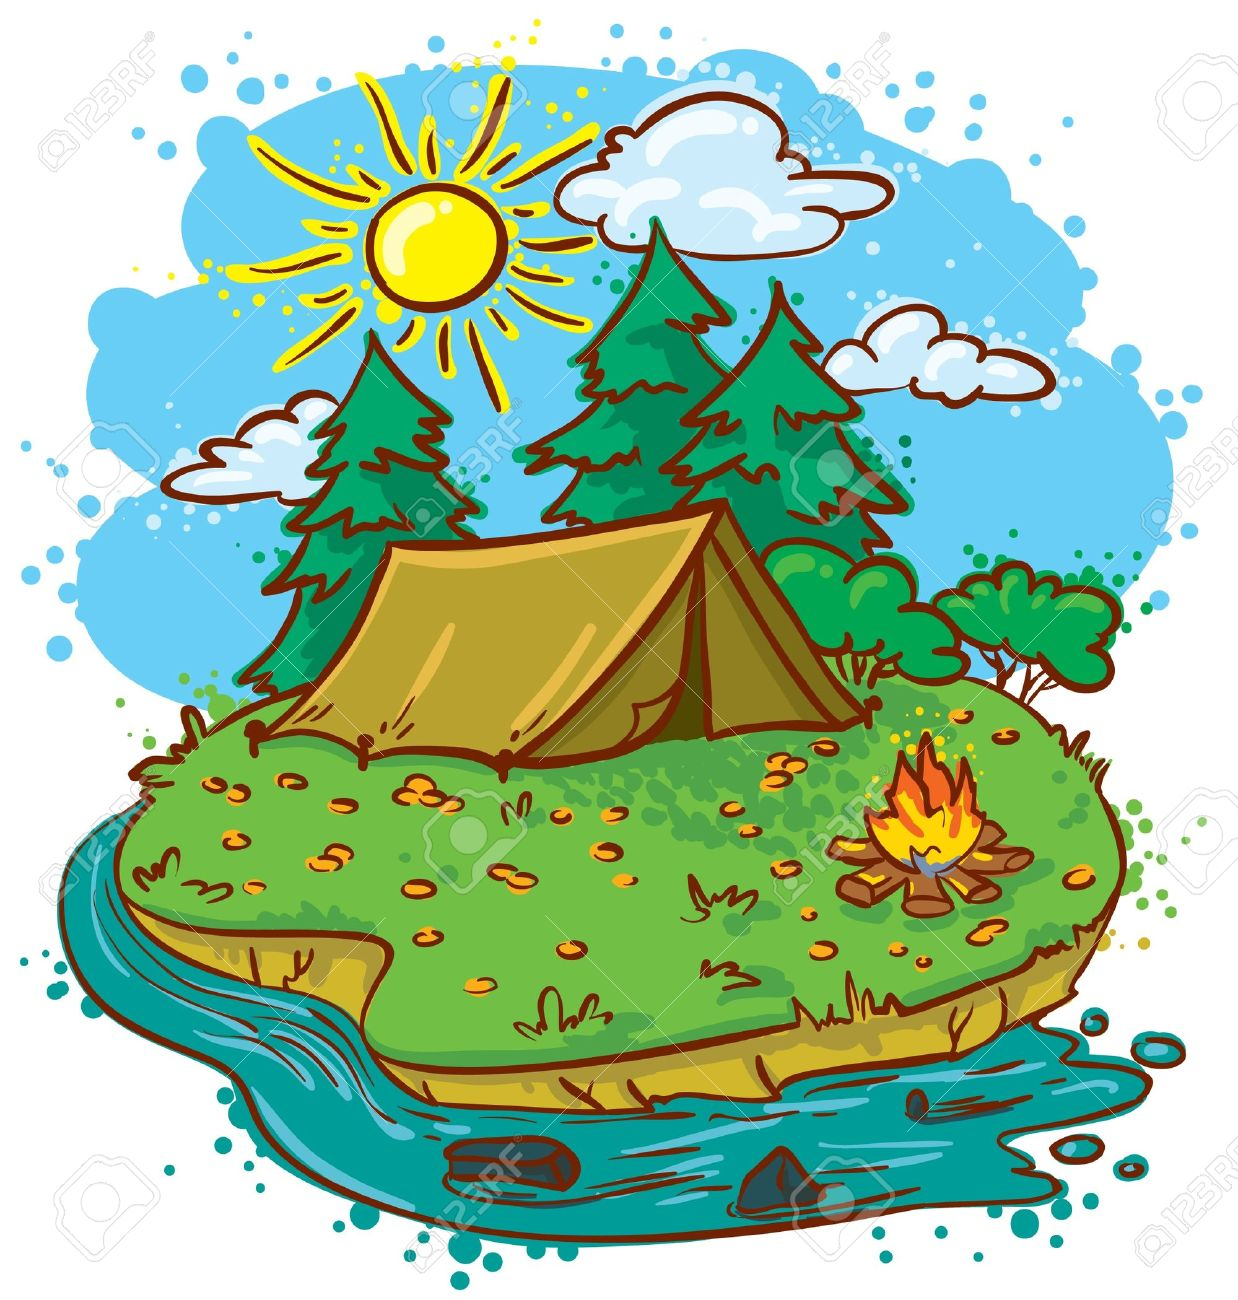 campsite clipartlook. Camping clipart campground